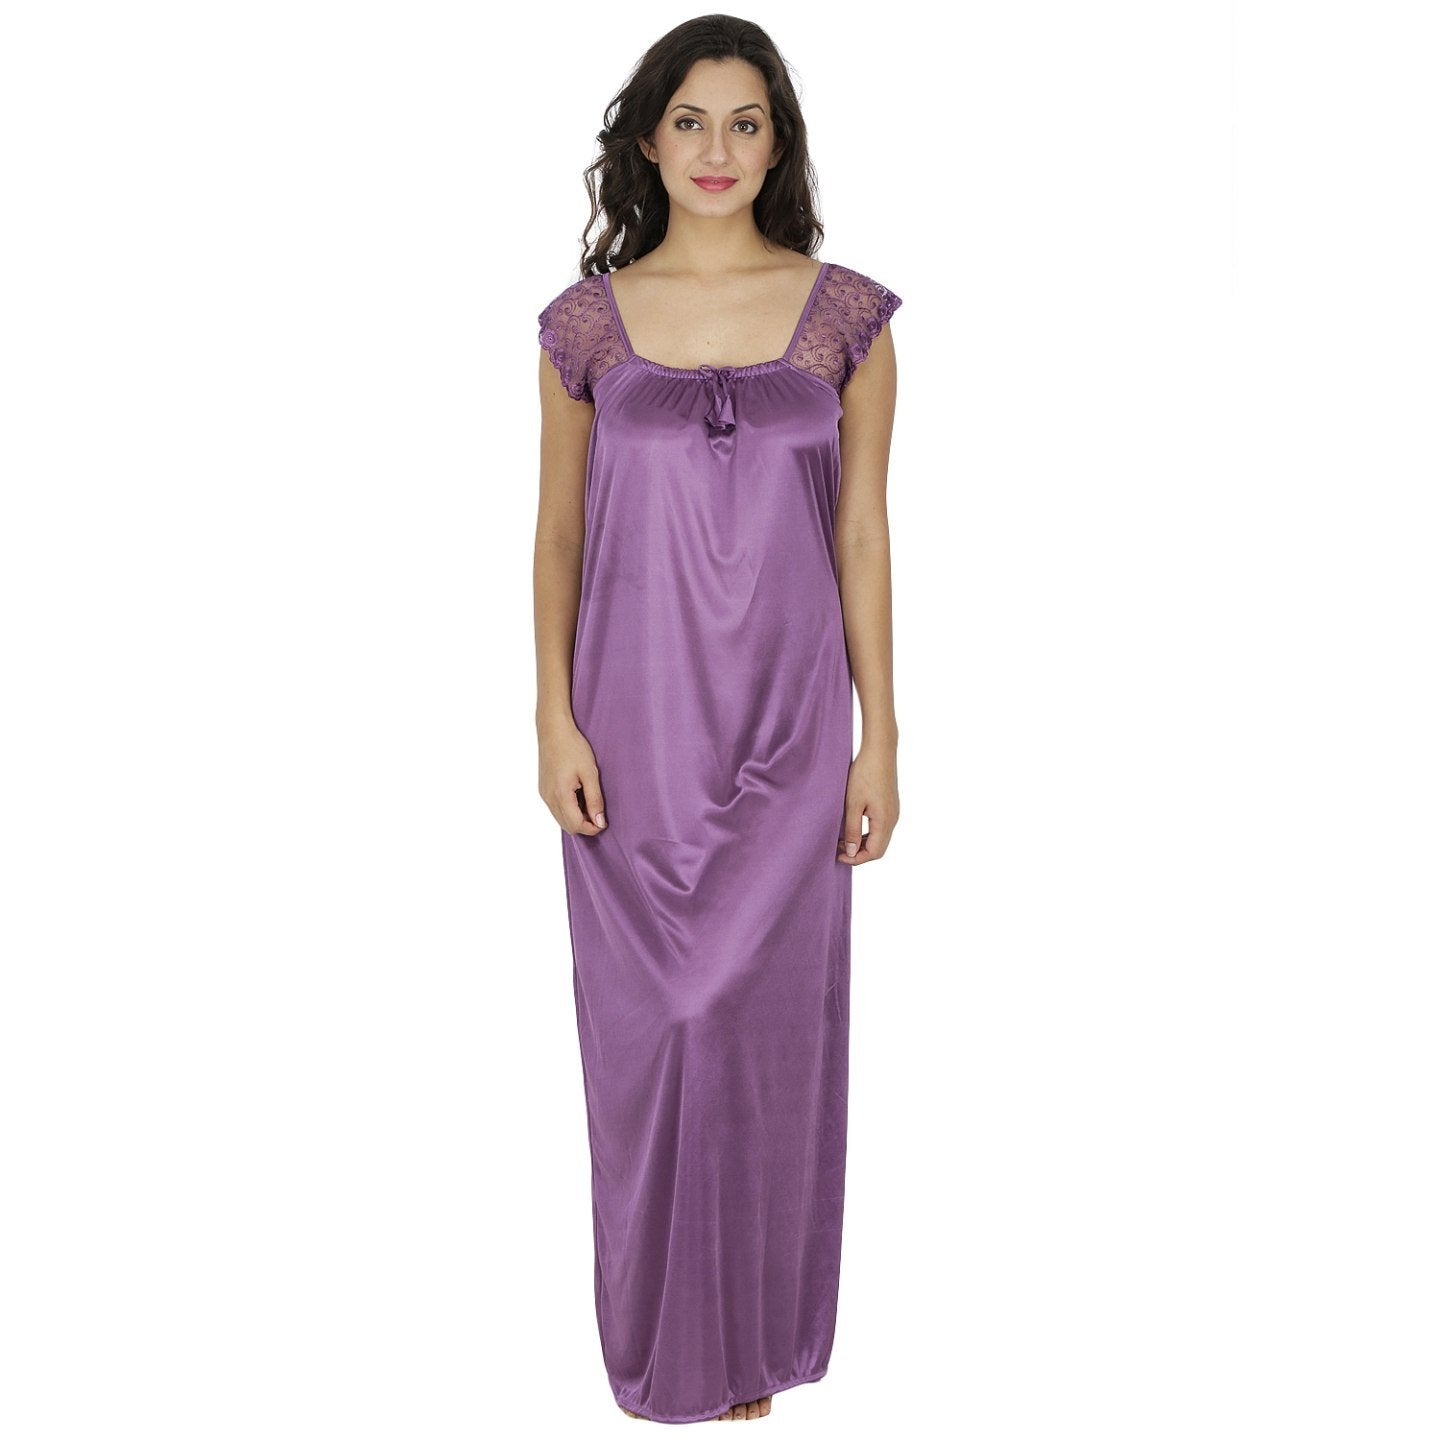 Klamotten_long nightdress_X48_SPrpl